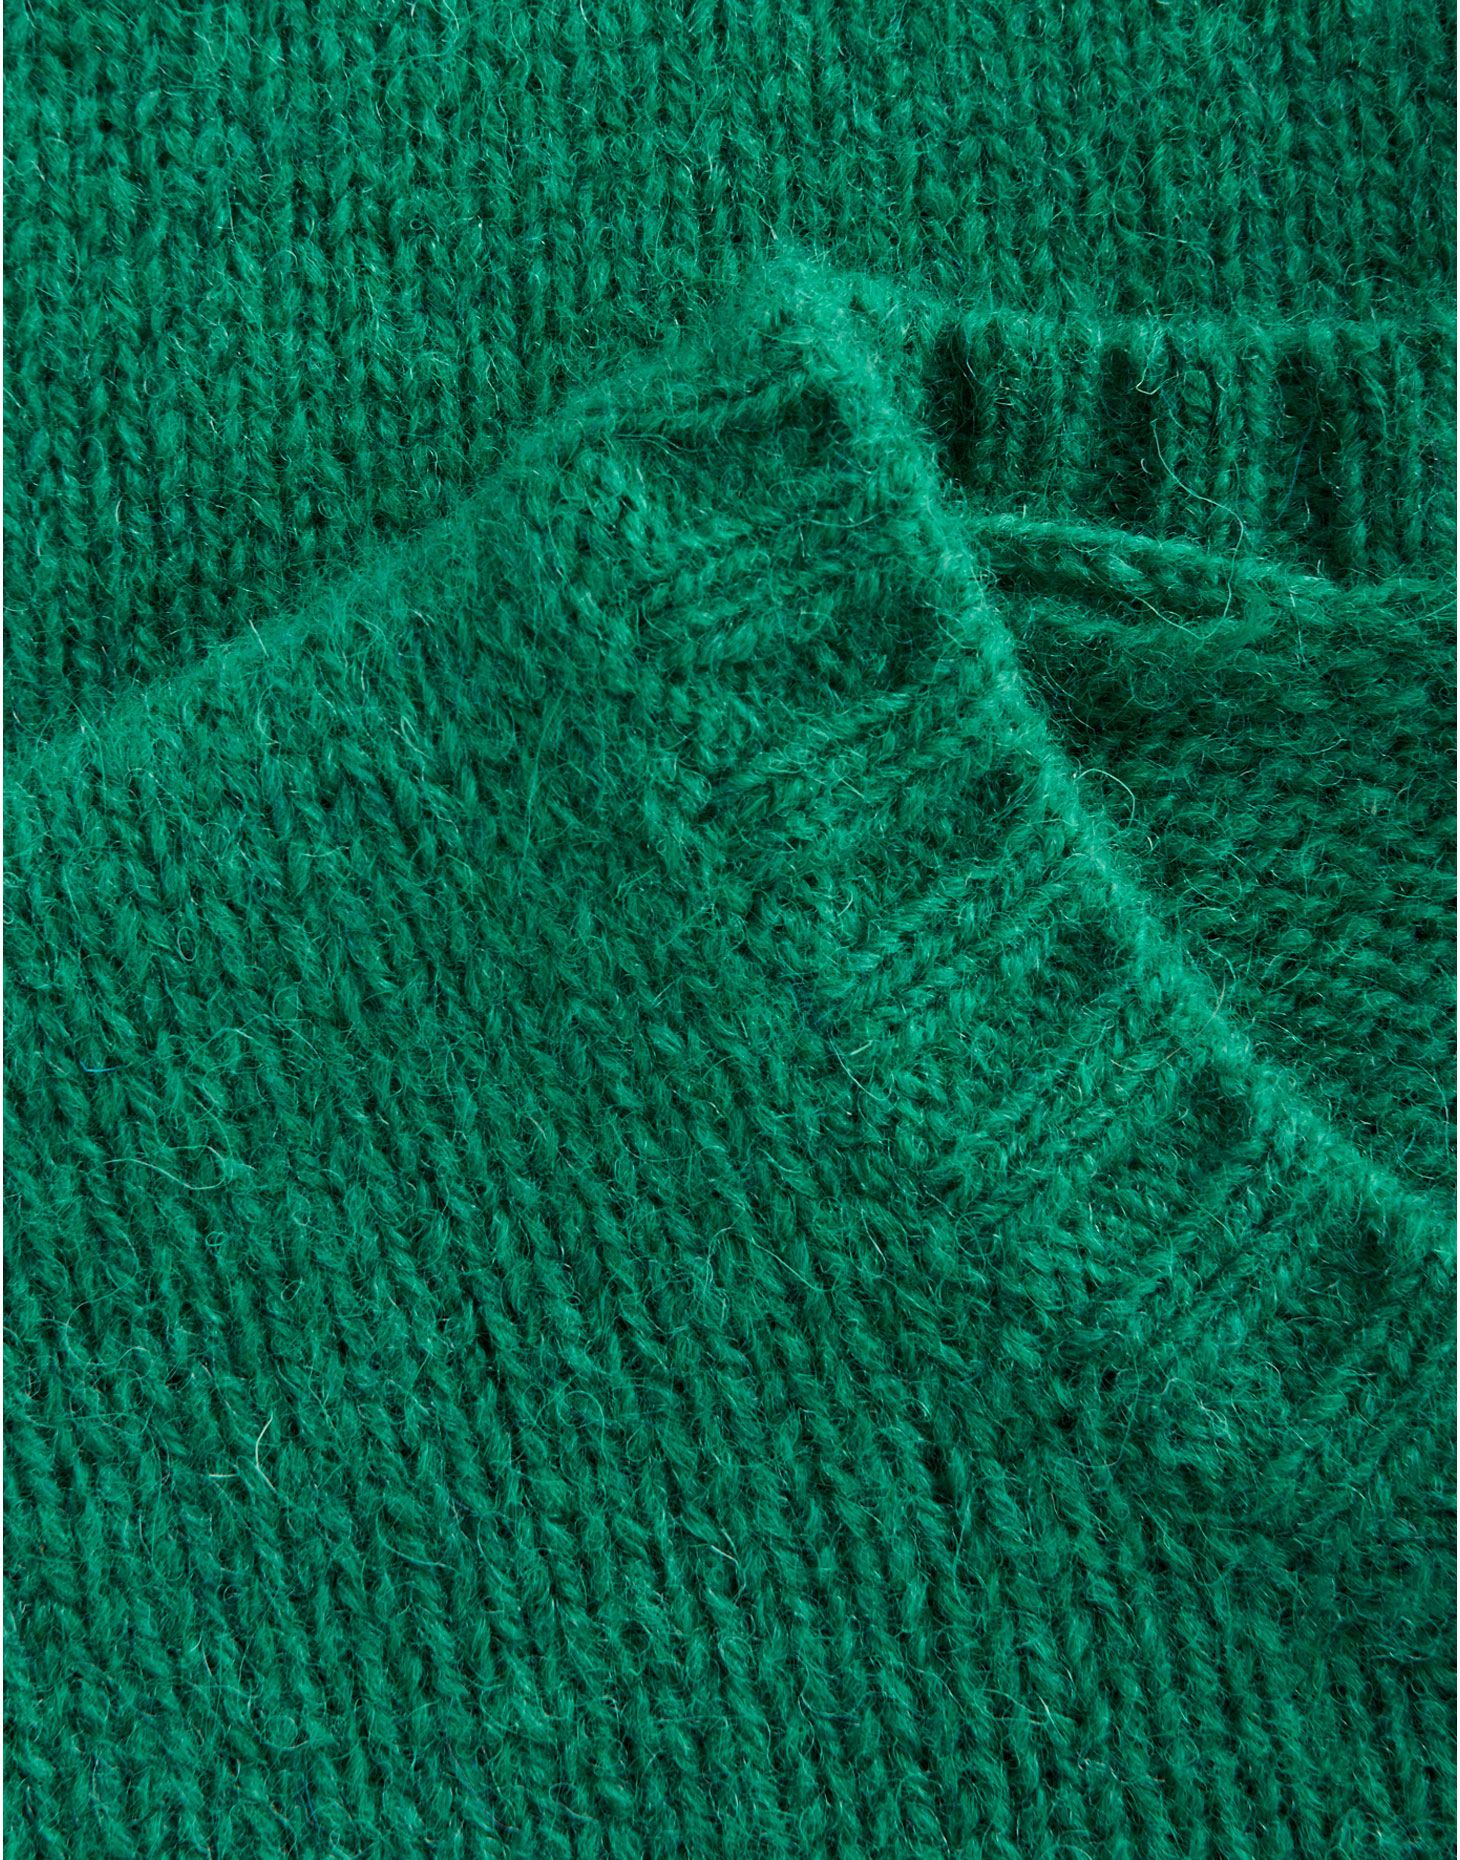 Bottle green woolly jumper.